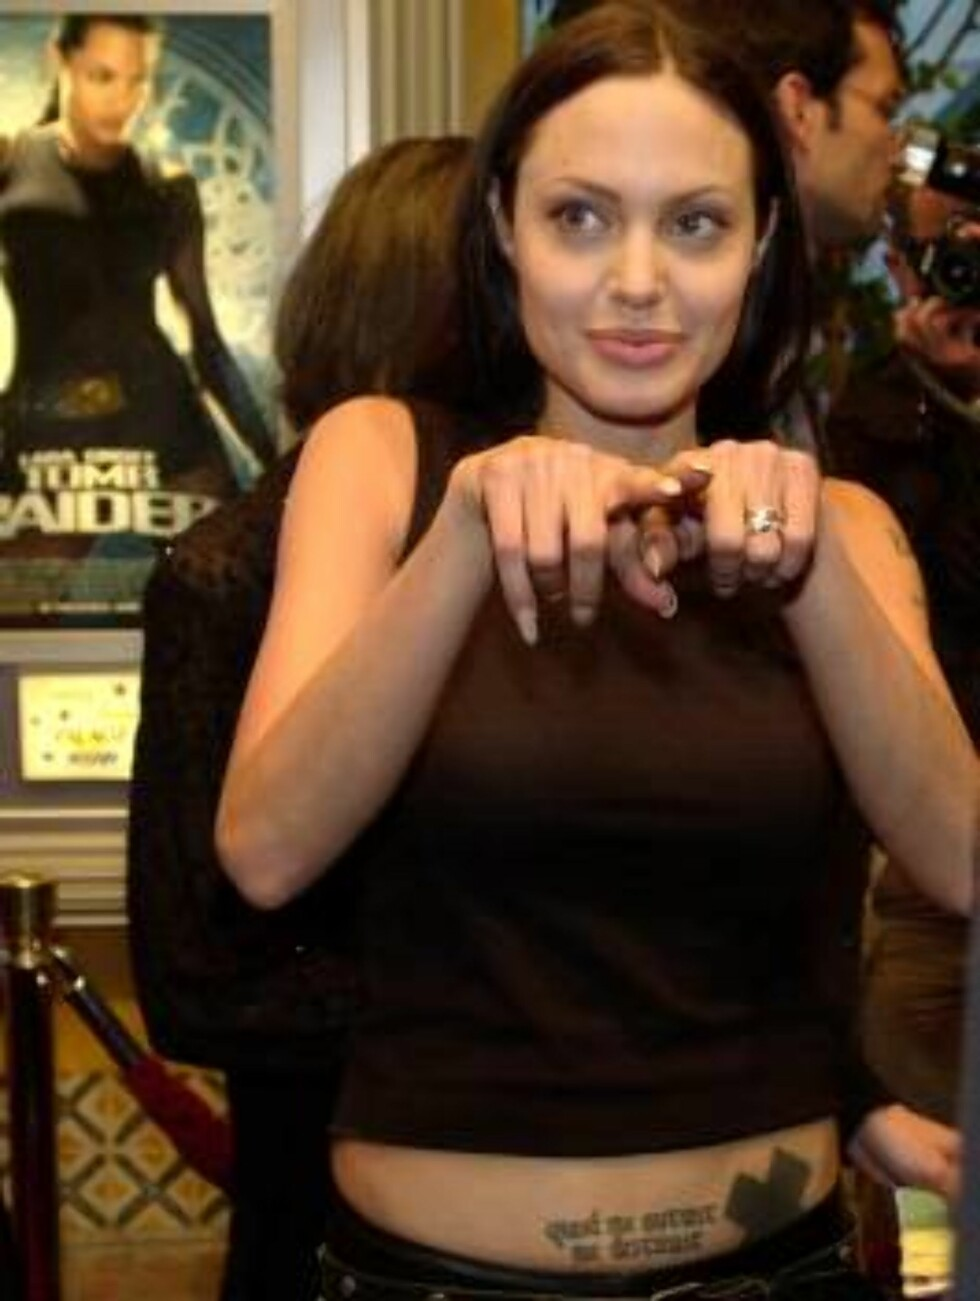 """Actress Angelina Jolie, who stars in the new film, """"Lara Croft: Tomb Raider,"""" points to photographers during the world premiere of the film at the Mann Village Theater in Los Angeles, Monday, June 11, 2001. (AP Photo/Chris Pizzello) Foto: AP/Scanpix"""